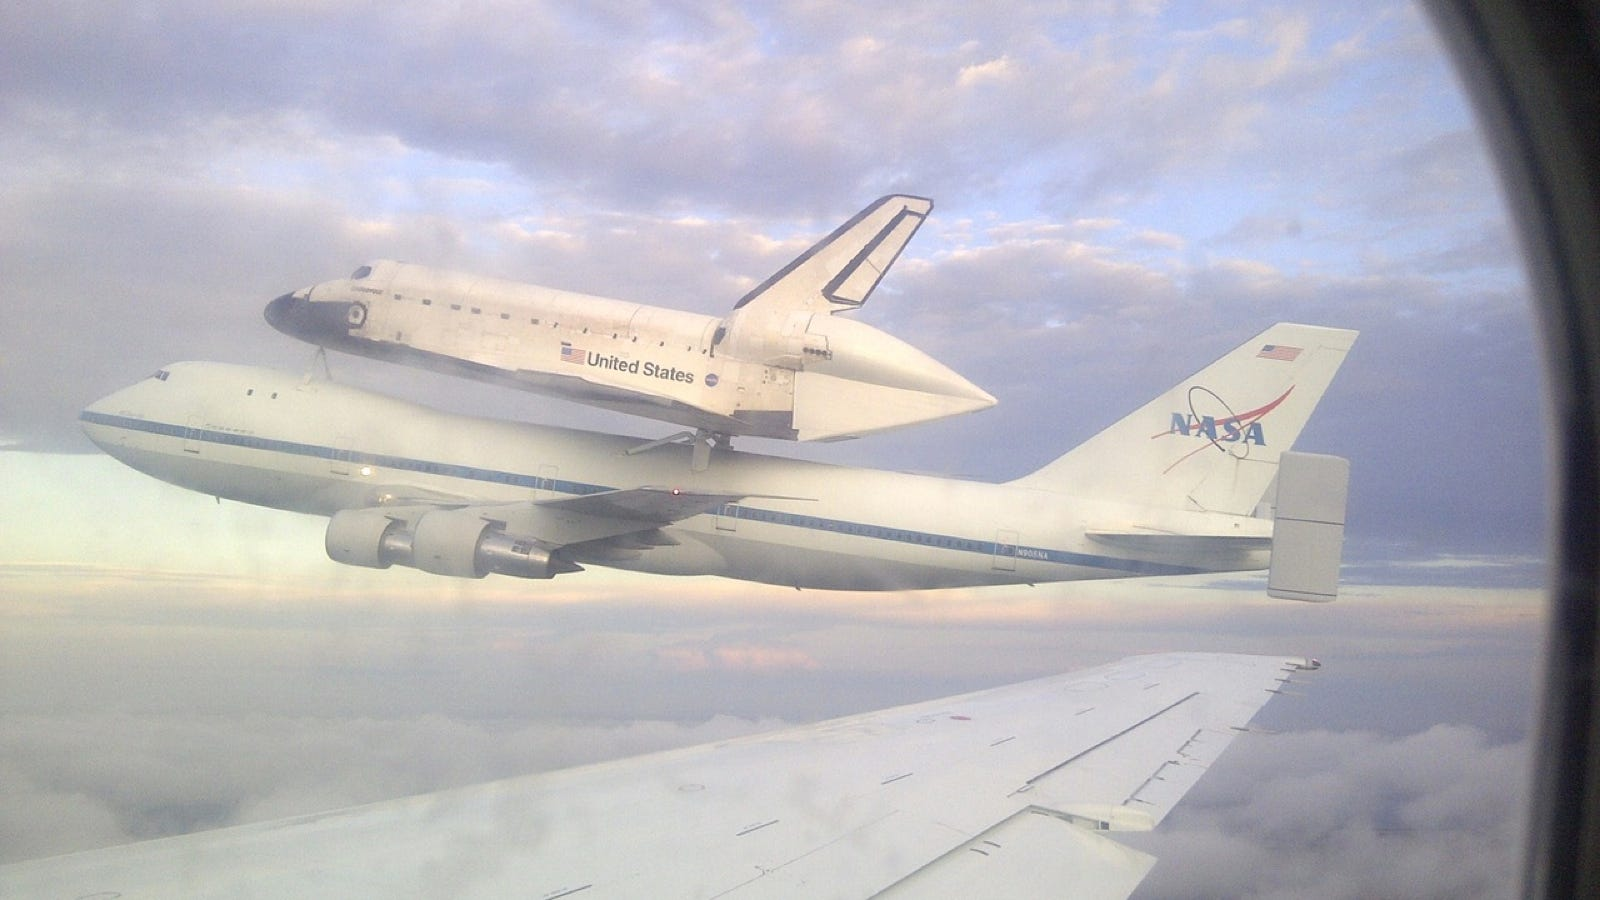 Holy Shit, That's The Space Shuttle Outside My Plane Window!